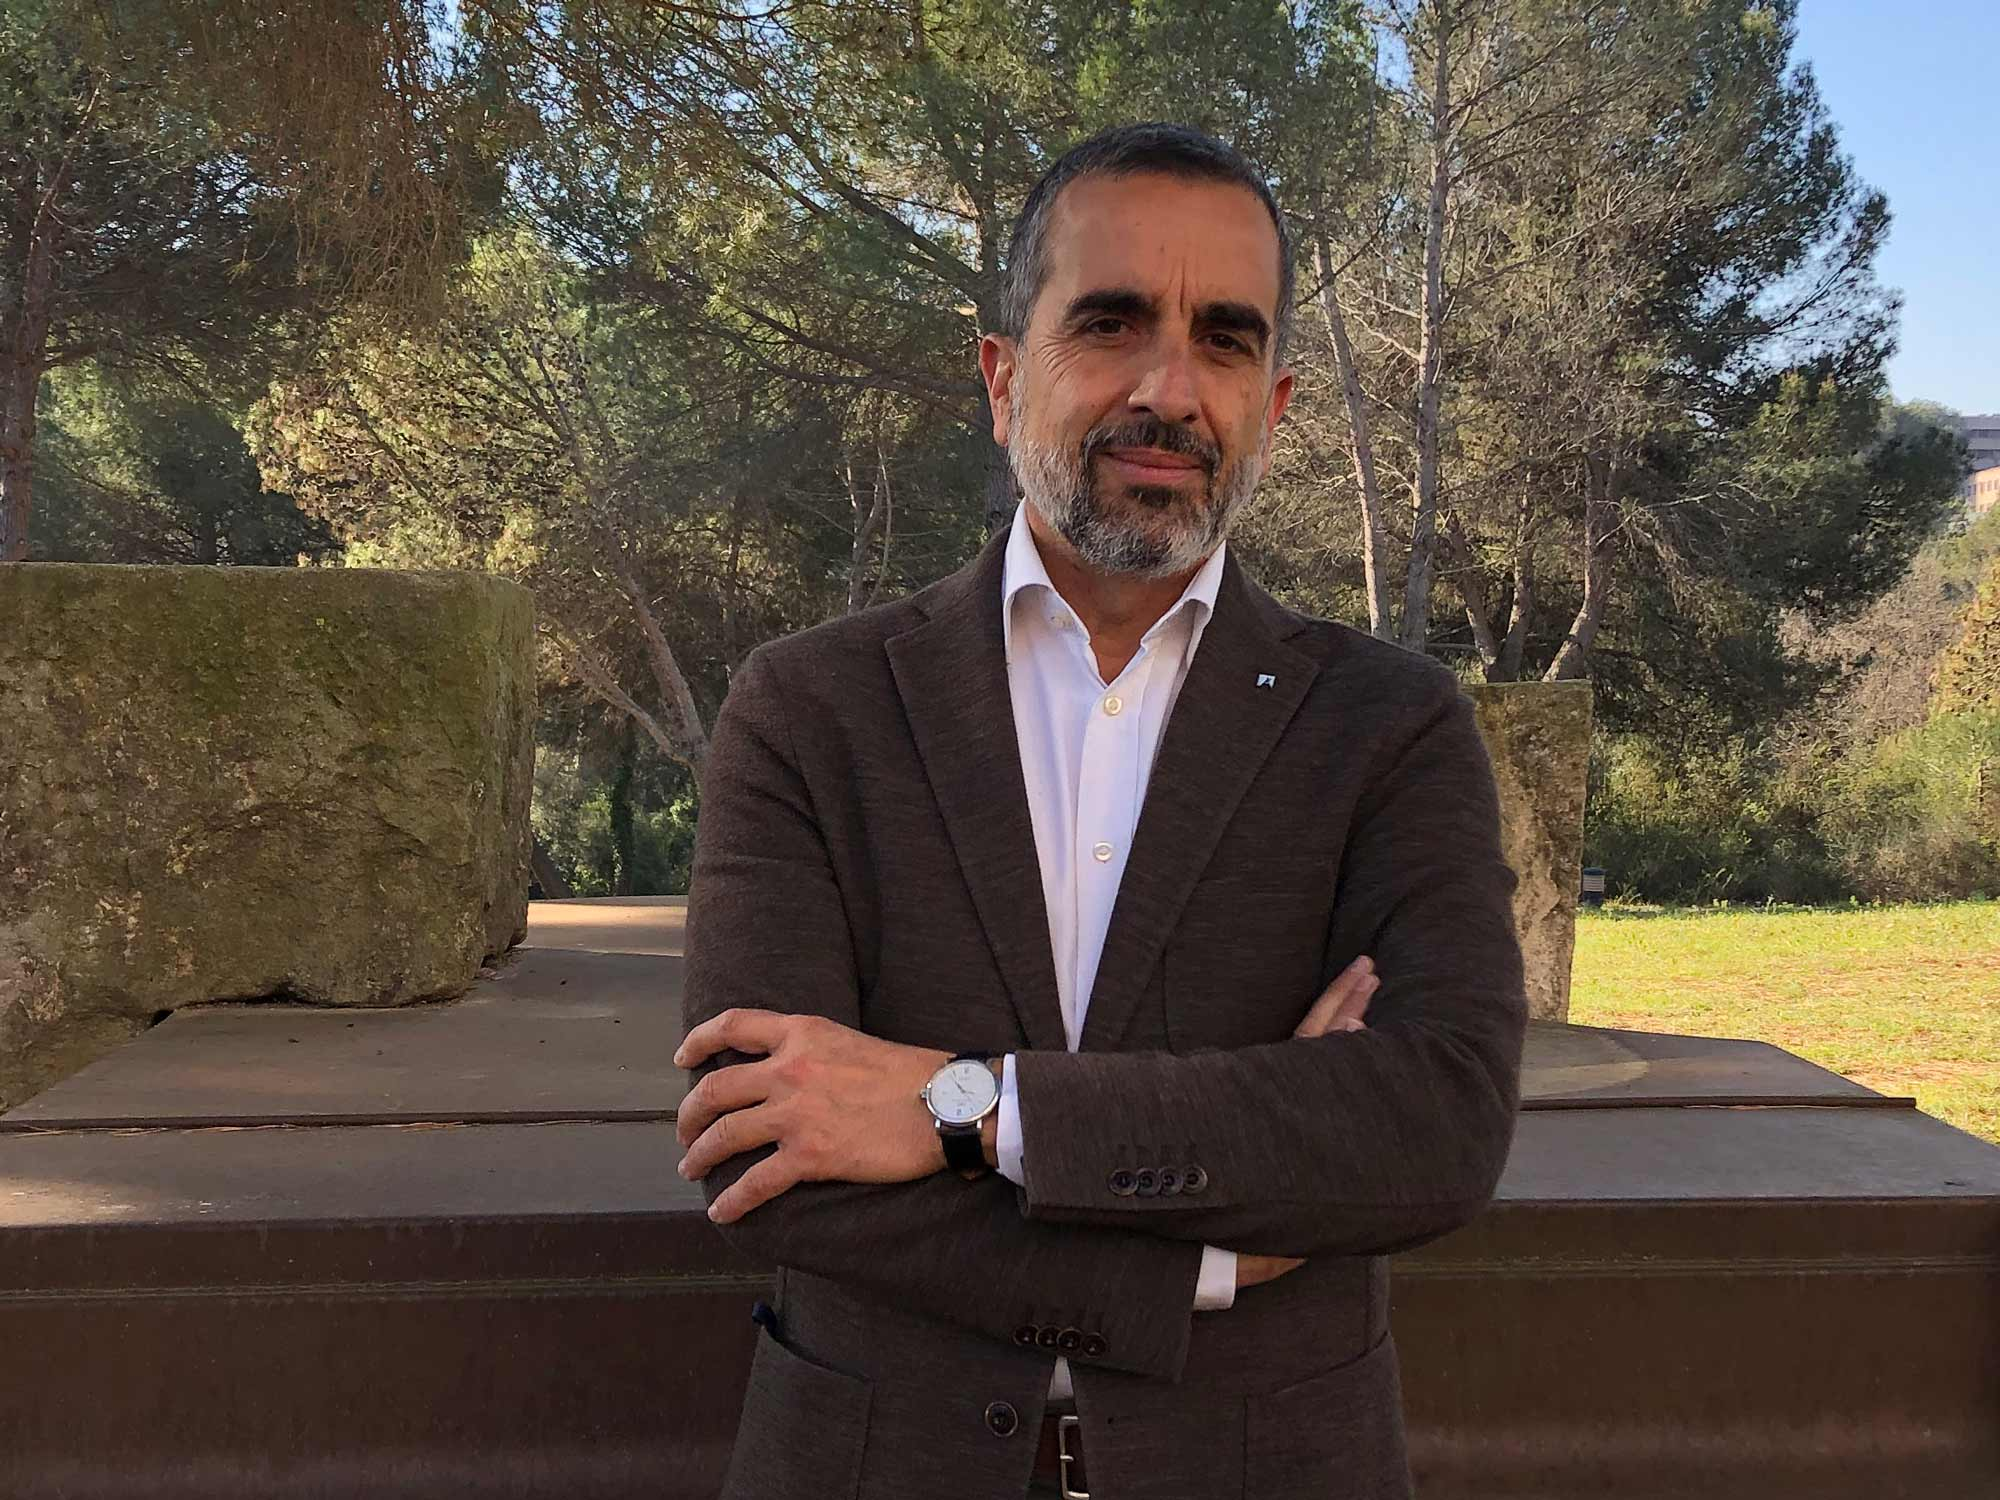 Màrius Martínez is the new president of the ECIU